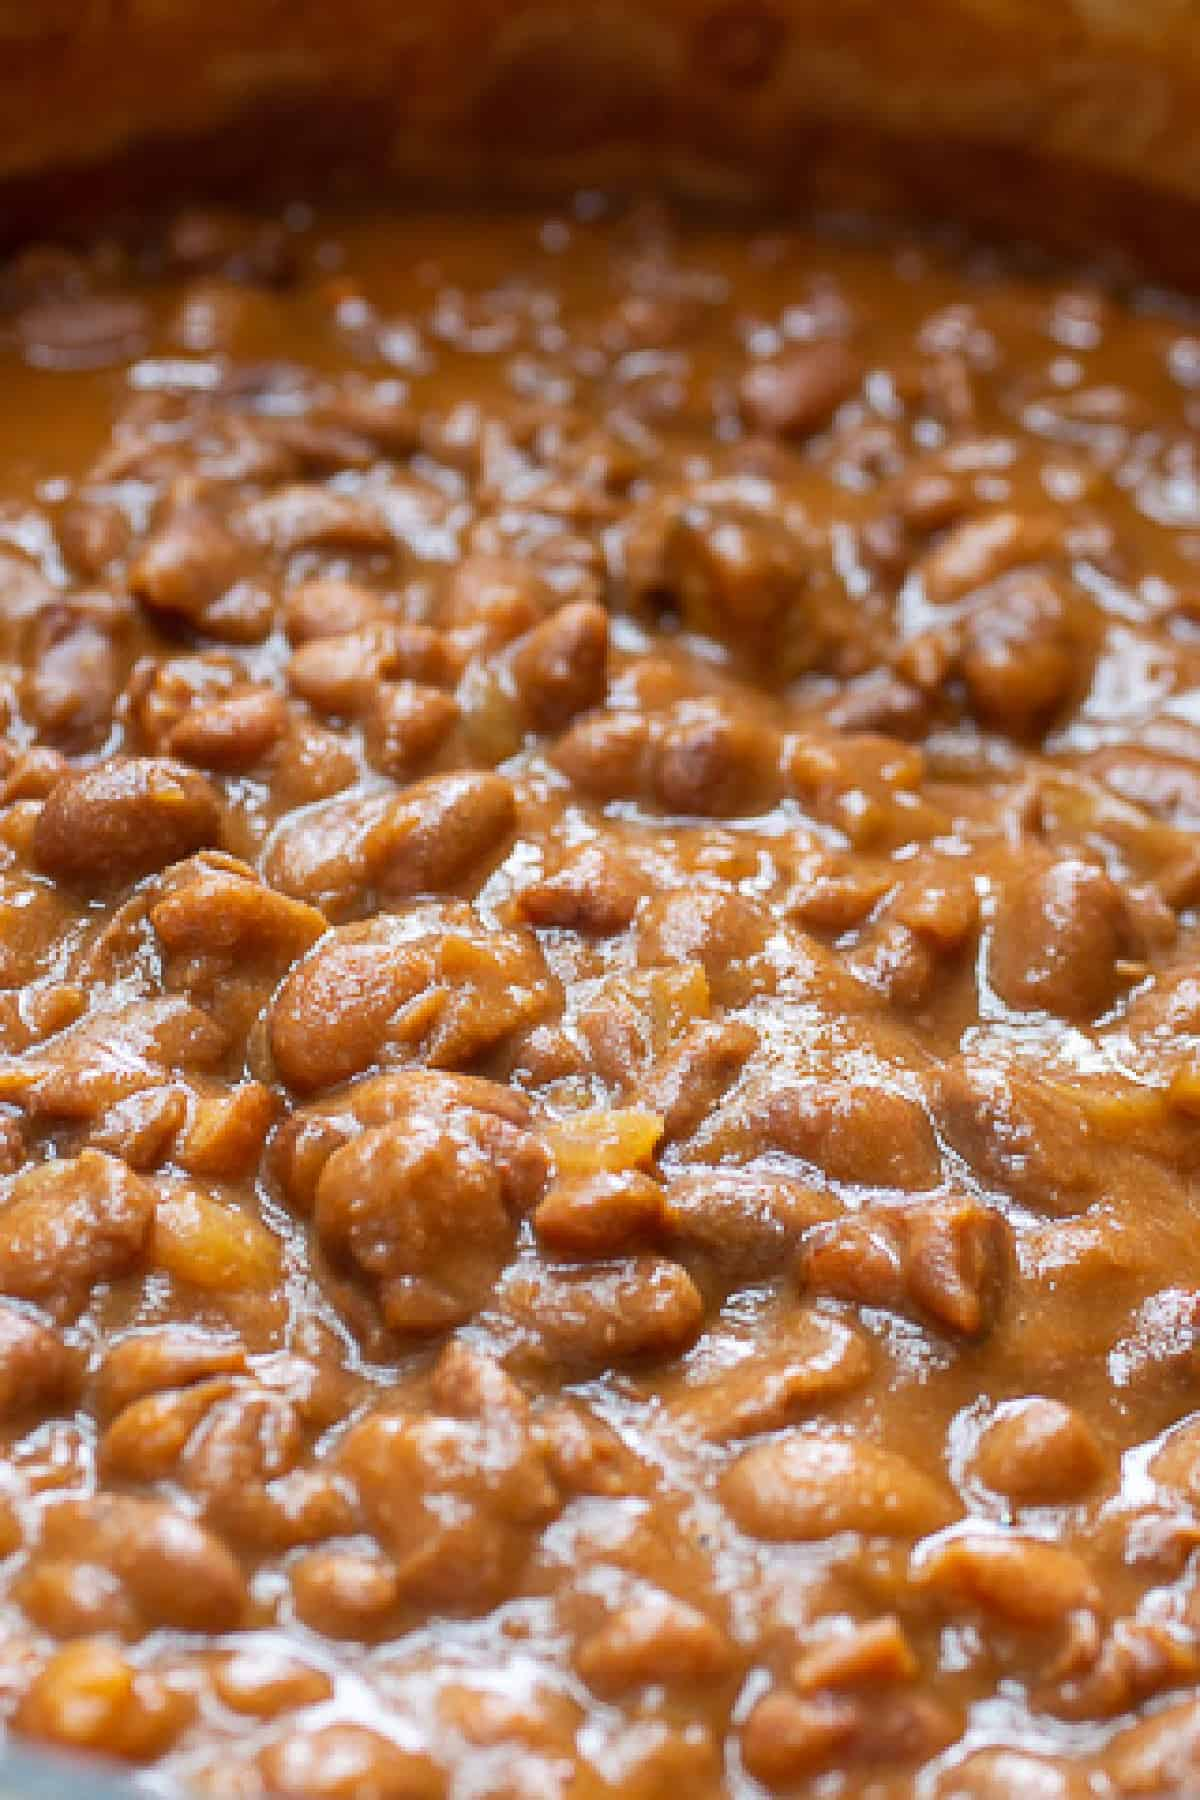 Close up of best baked beans in a pot  after cooking and ready to serve.